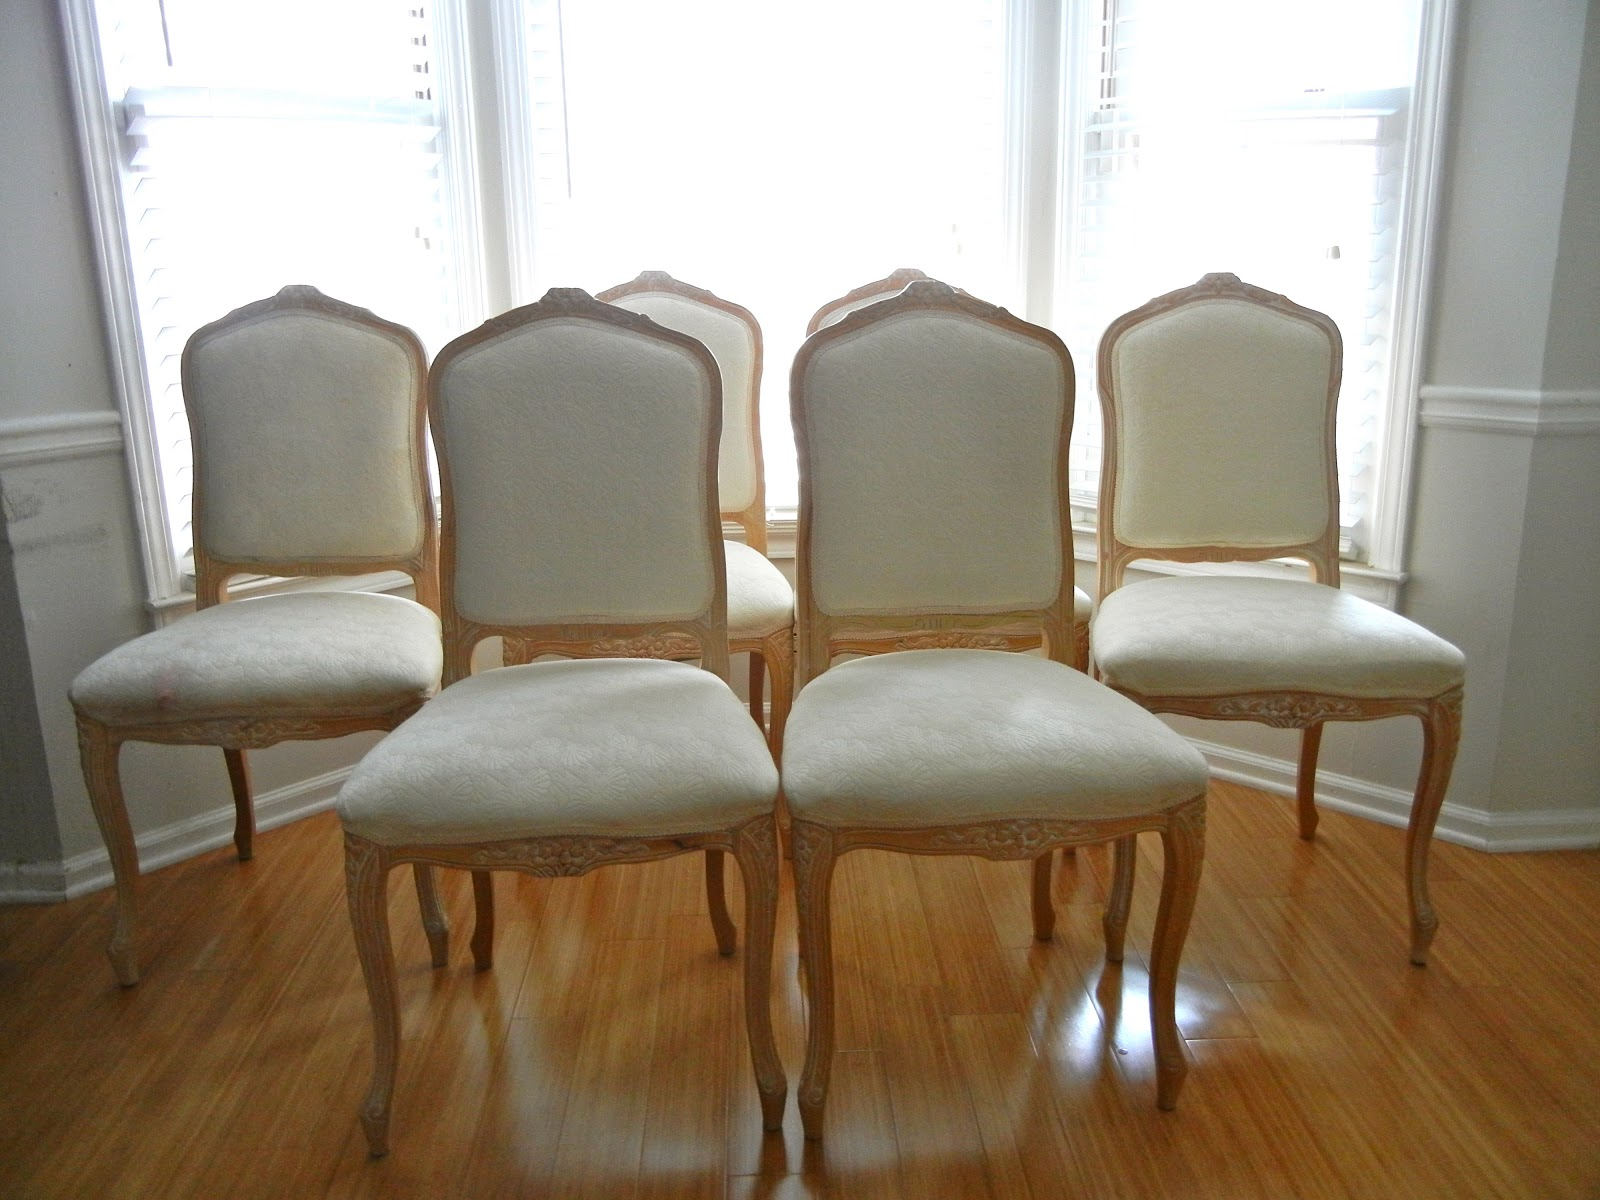 reupholstering louis dining chairs part 1 dayka robinson designs